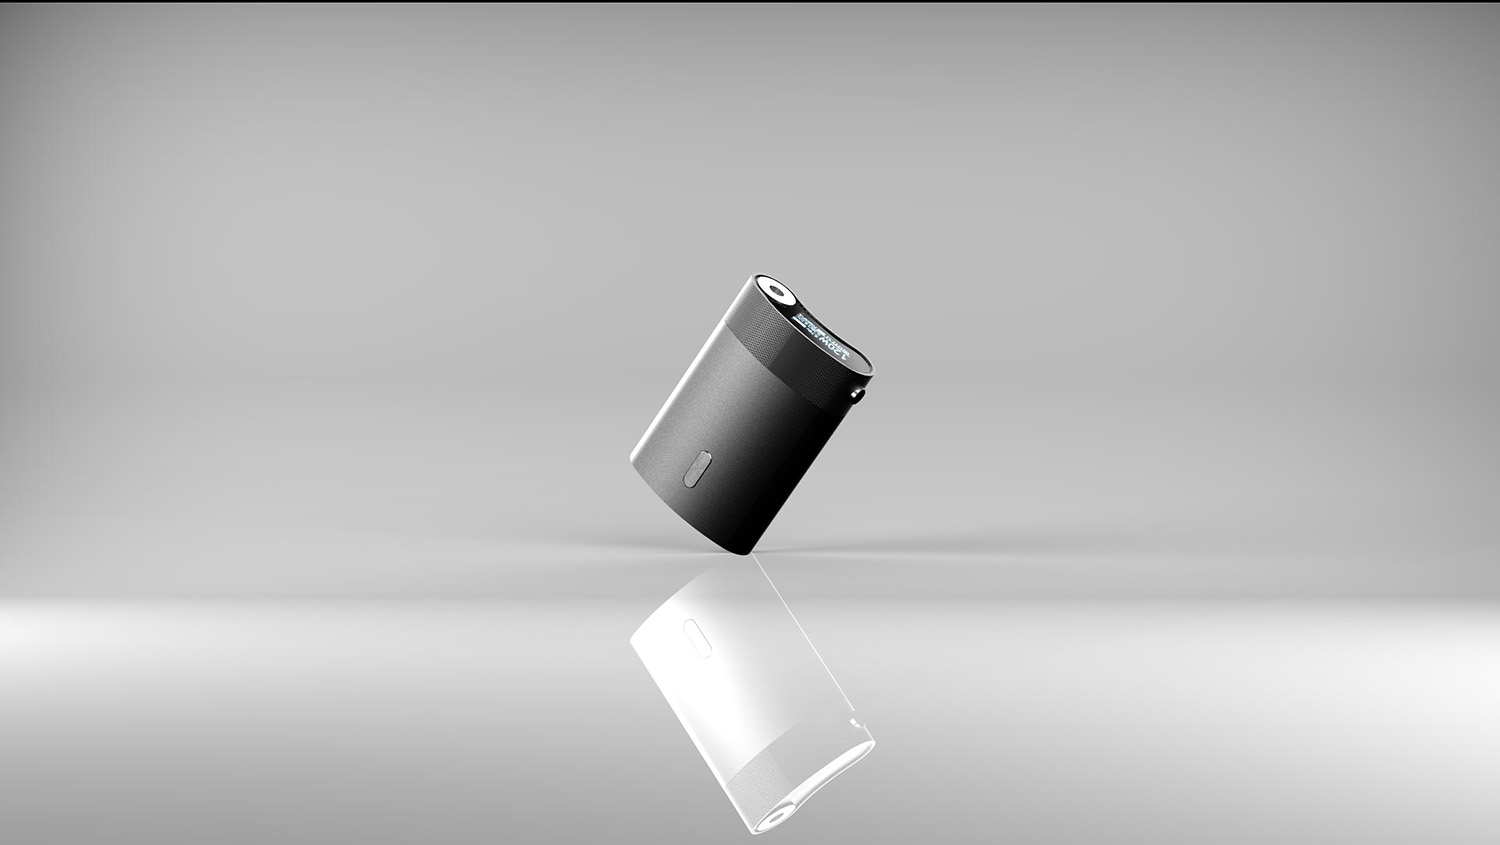 Photo of vaporizer product design rendering